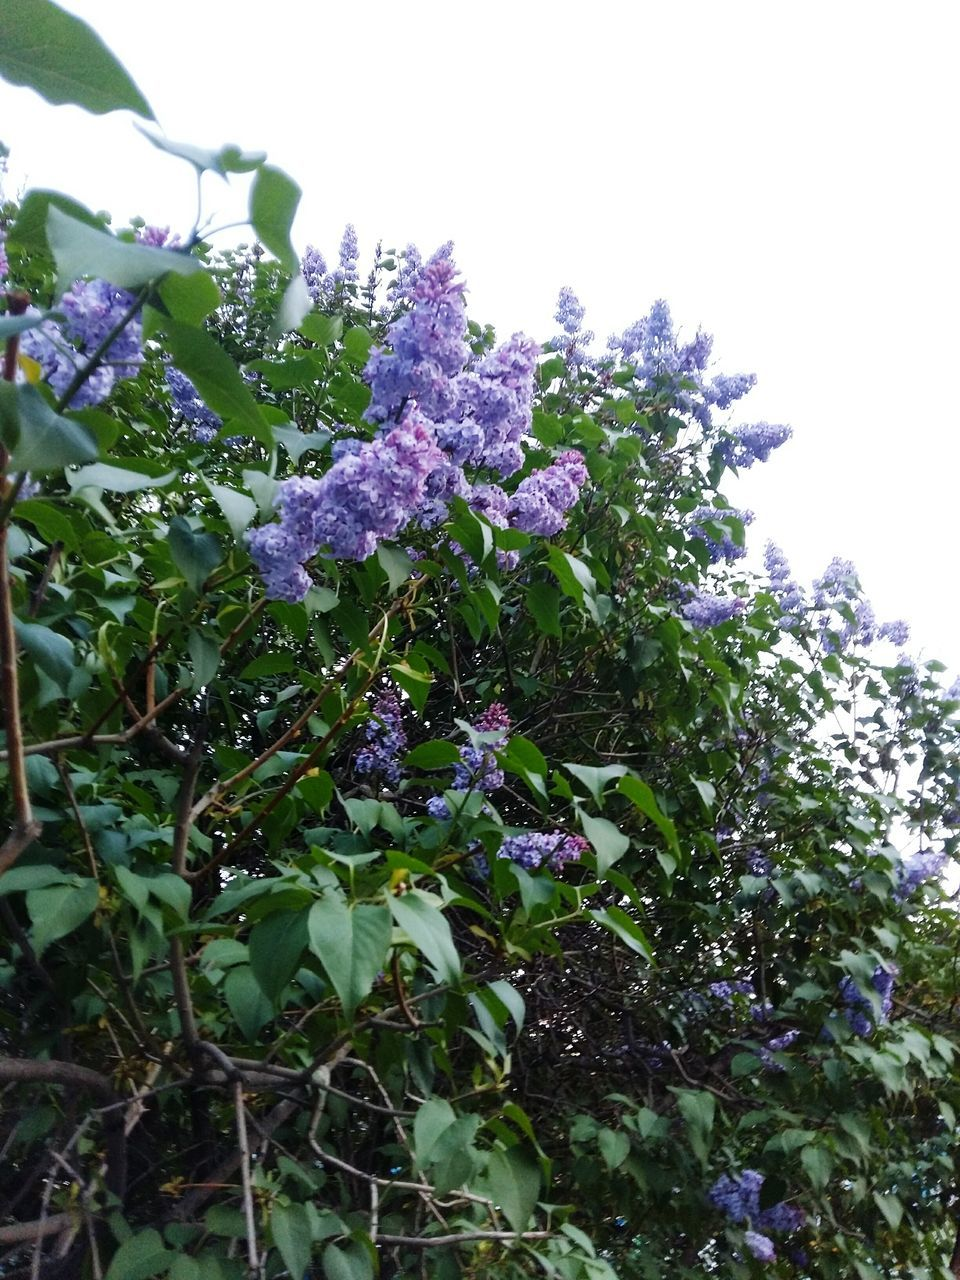 growth, flower, purple, nature, plant, beauty in nature, fragility, leaf, freshness, day, no people, green color, low angle view, outdoors, lilac, close-up, tree, flower head